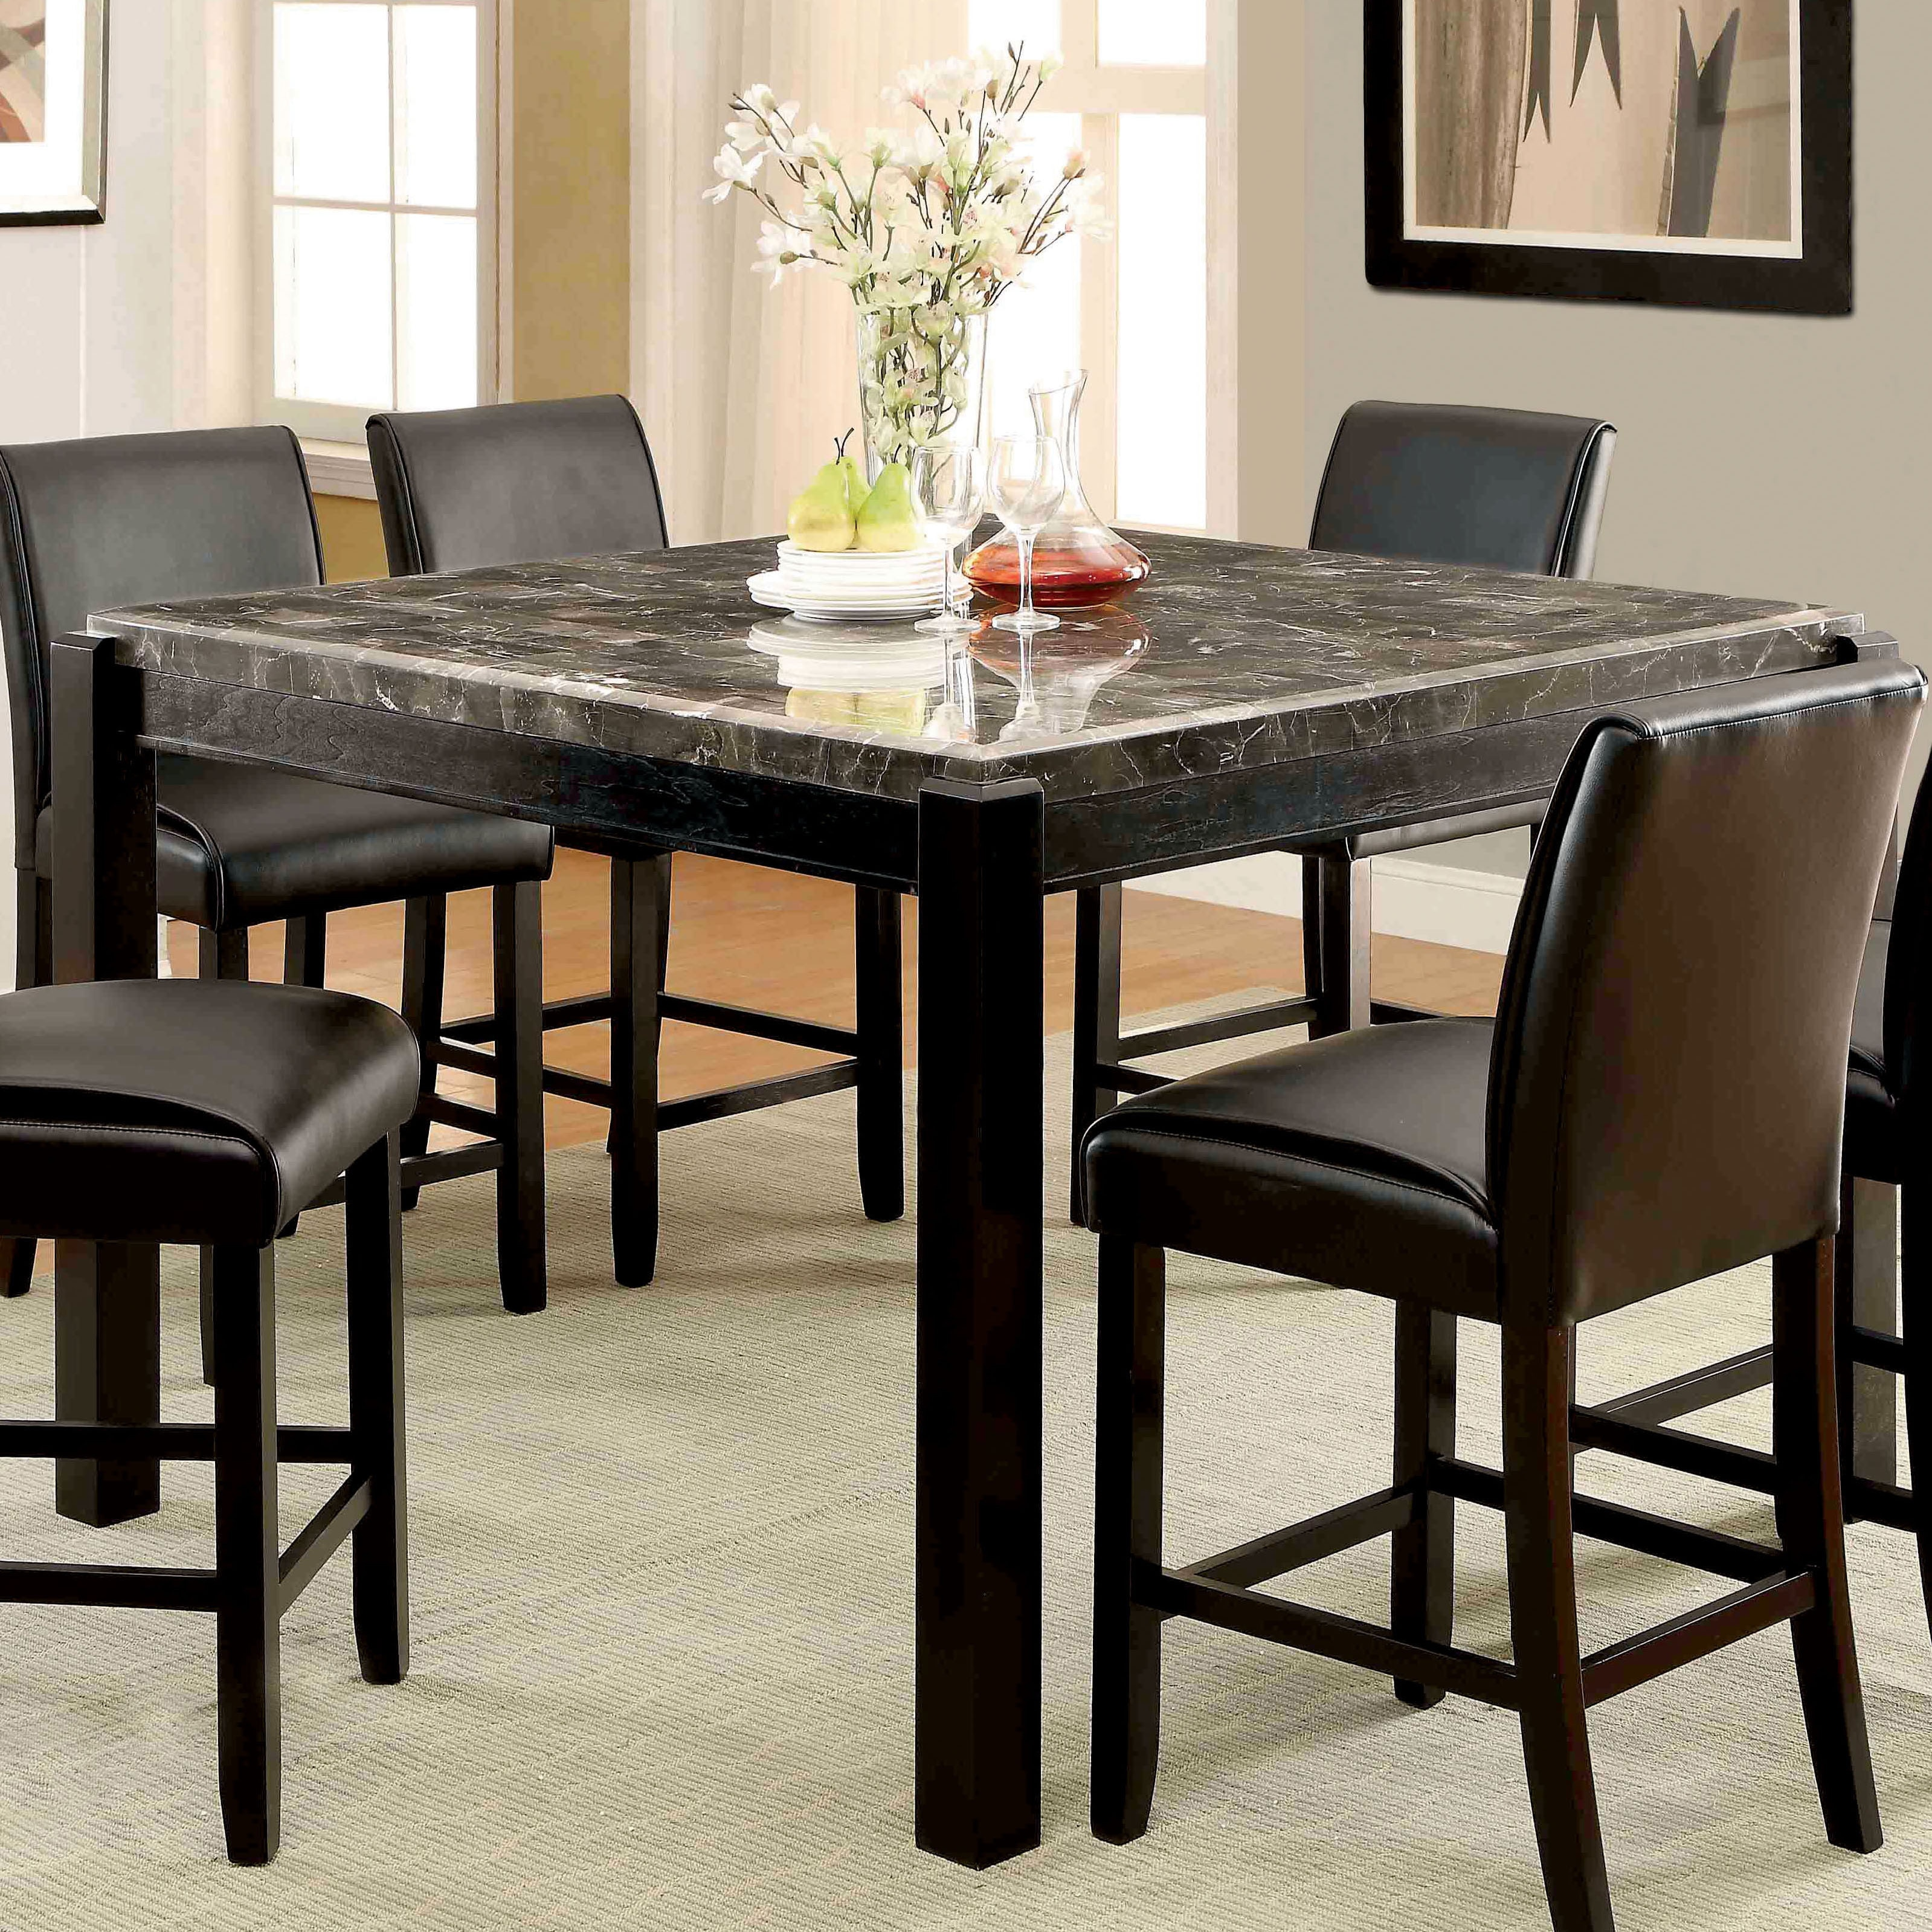 Buy Marble Kitchen & Dining Room Tables Online at Overstock ...